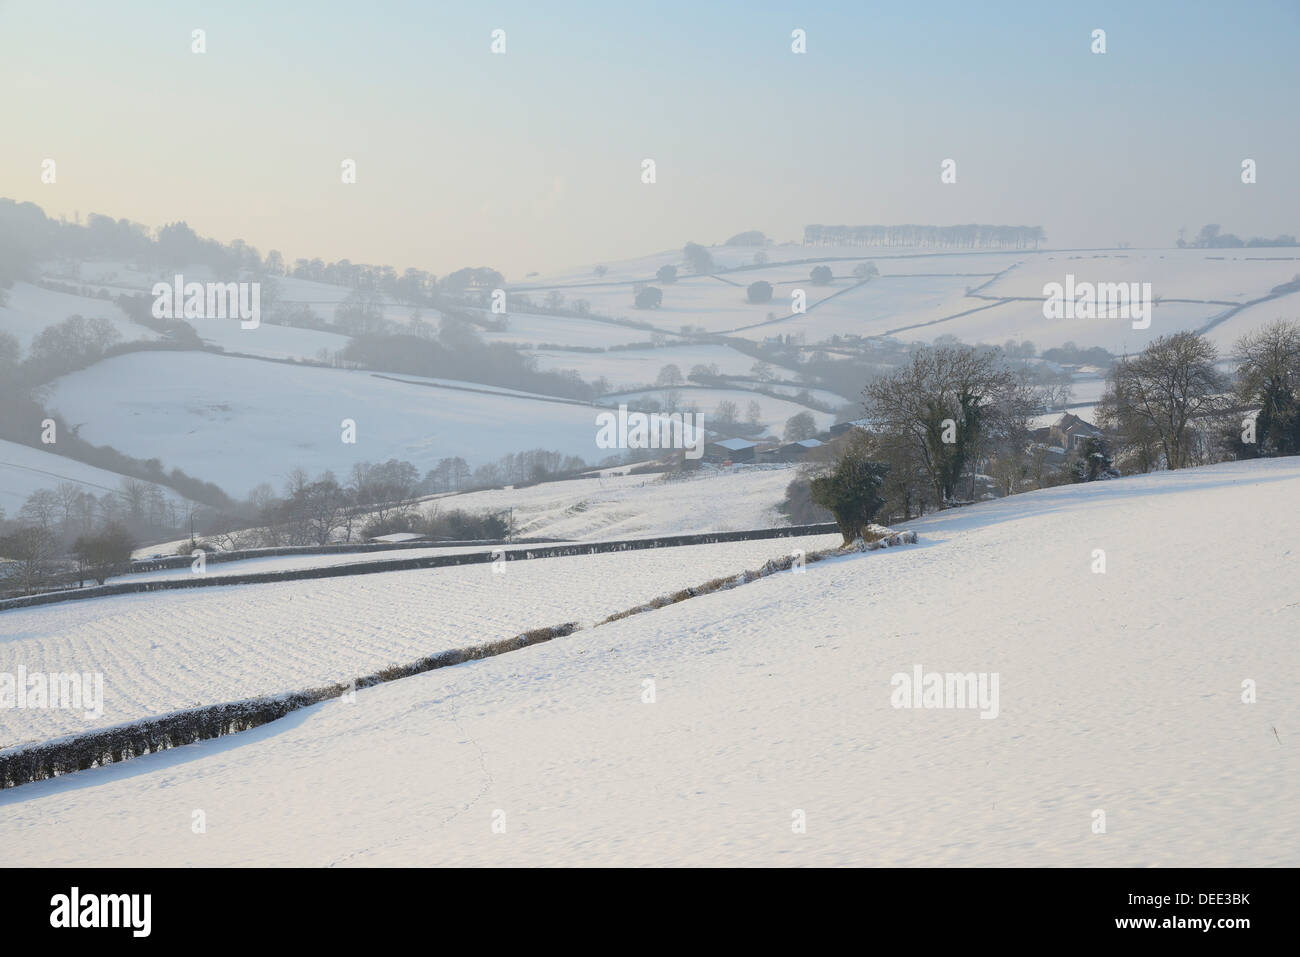 Snow covered hillside pastureland, arable fields and bare trees in winter, Tadwick, Bath and Northeast Somerset, England, UK - Stock Image